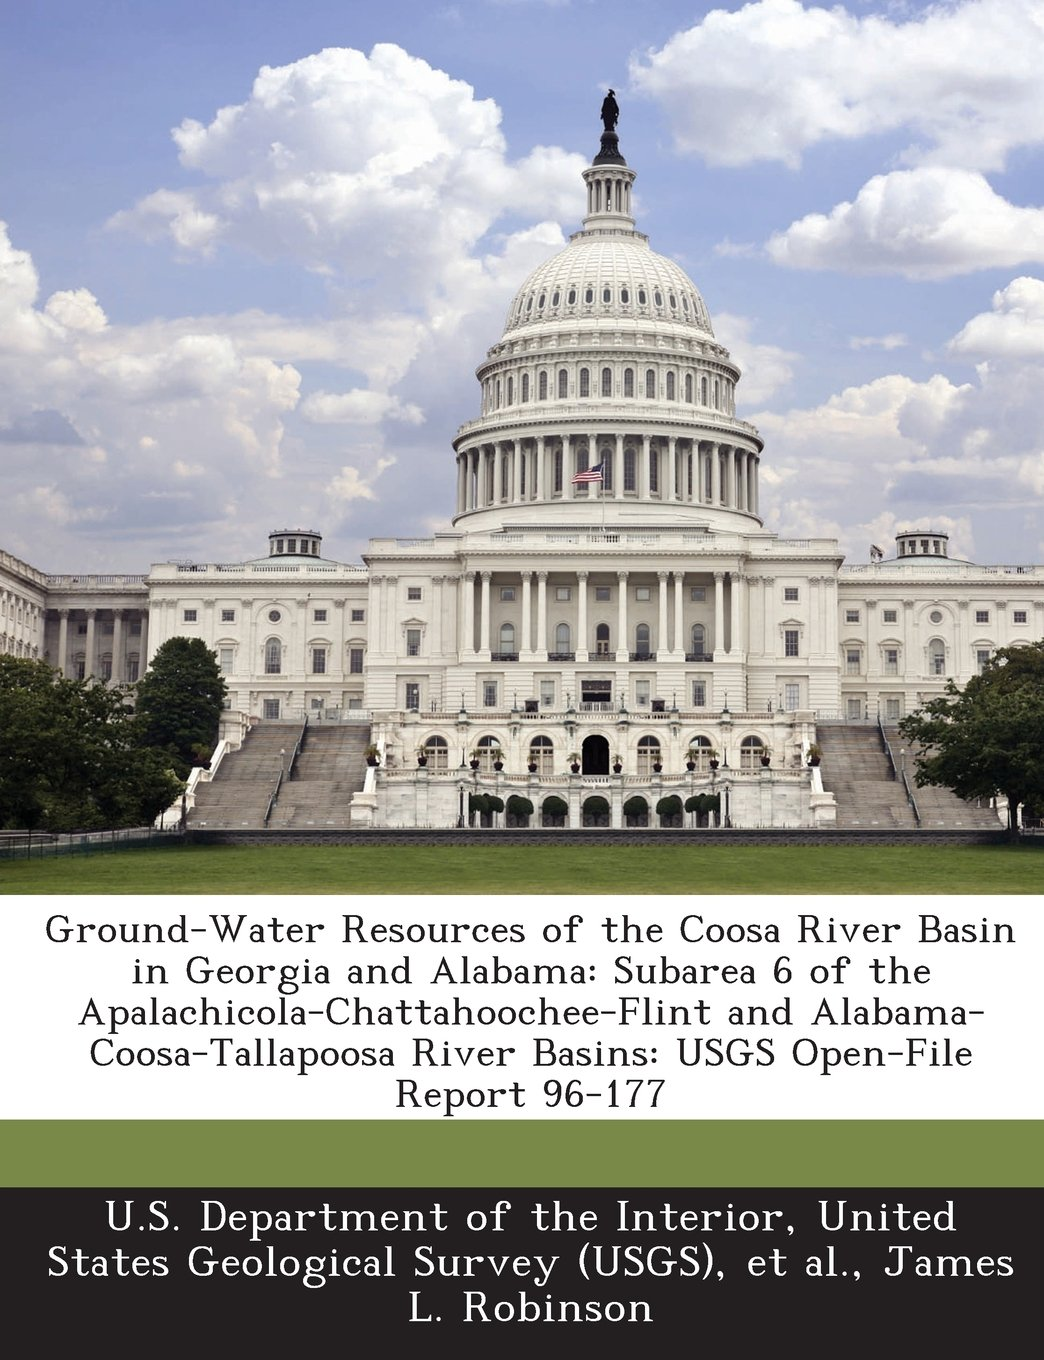 Download Ground-Water Resources of the Coosa River Basin in Georgia and Alabama: Subarea 6 of the Apalachicola-Chattahoochee-Flint and Alabama-Coosa-Tallapoosa River Basins: USGS Open-File Report 96-177 pdf